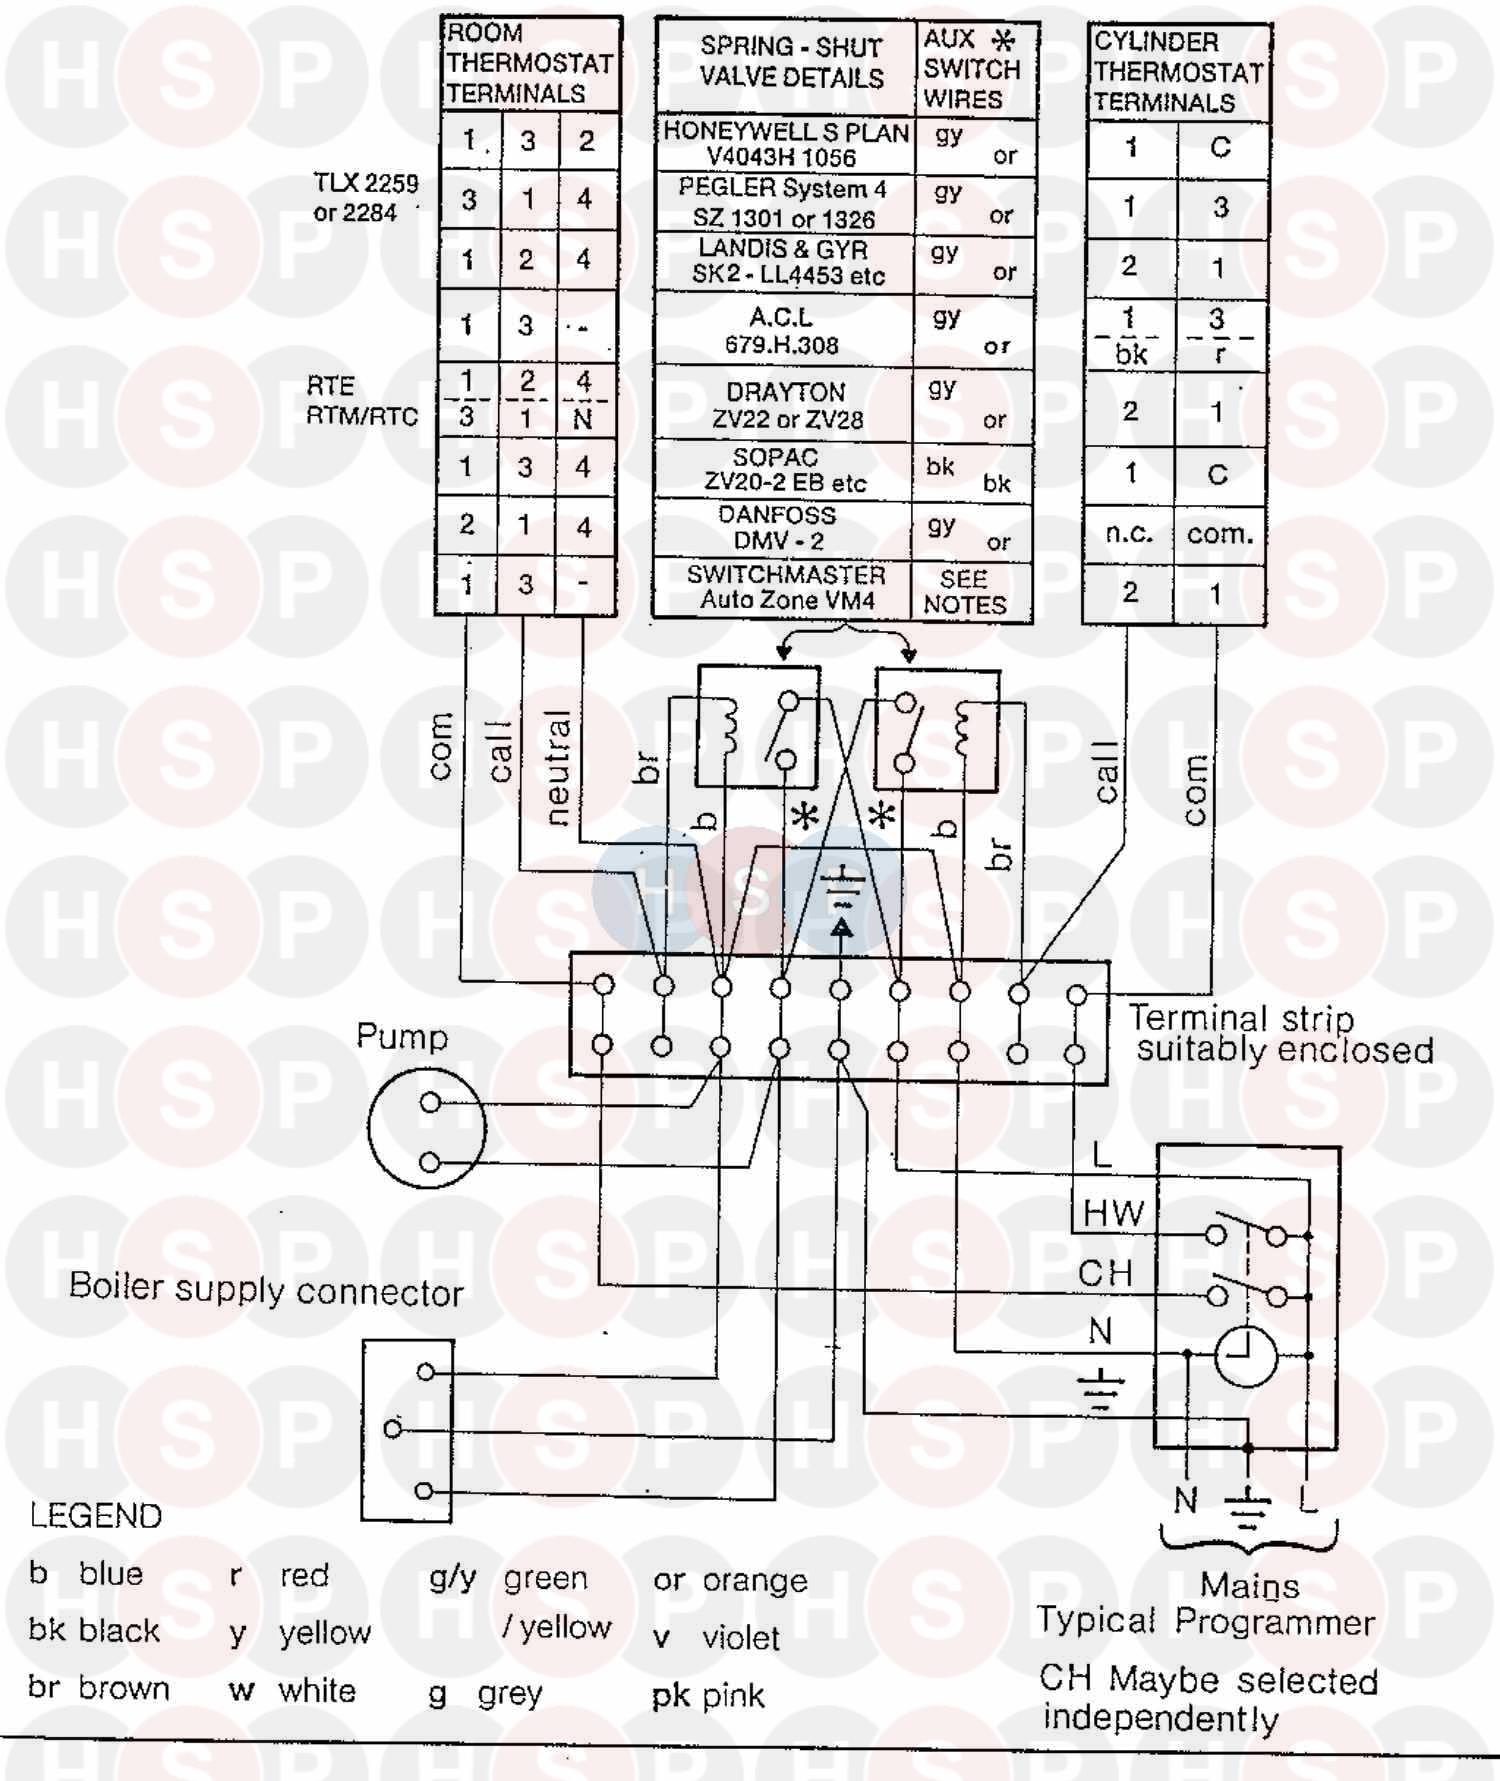 Alpha Boilers Wiring Diagrams Ideal Elan 2 Nf 250 Diagram 4 Heating Spare Parts Click The To Open It On A New Page